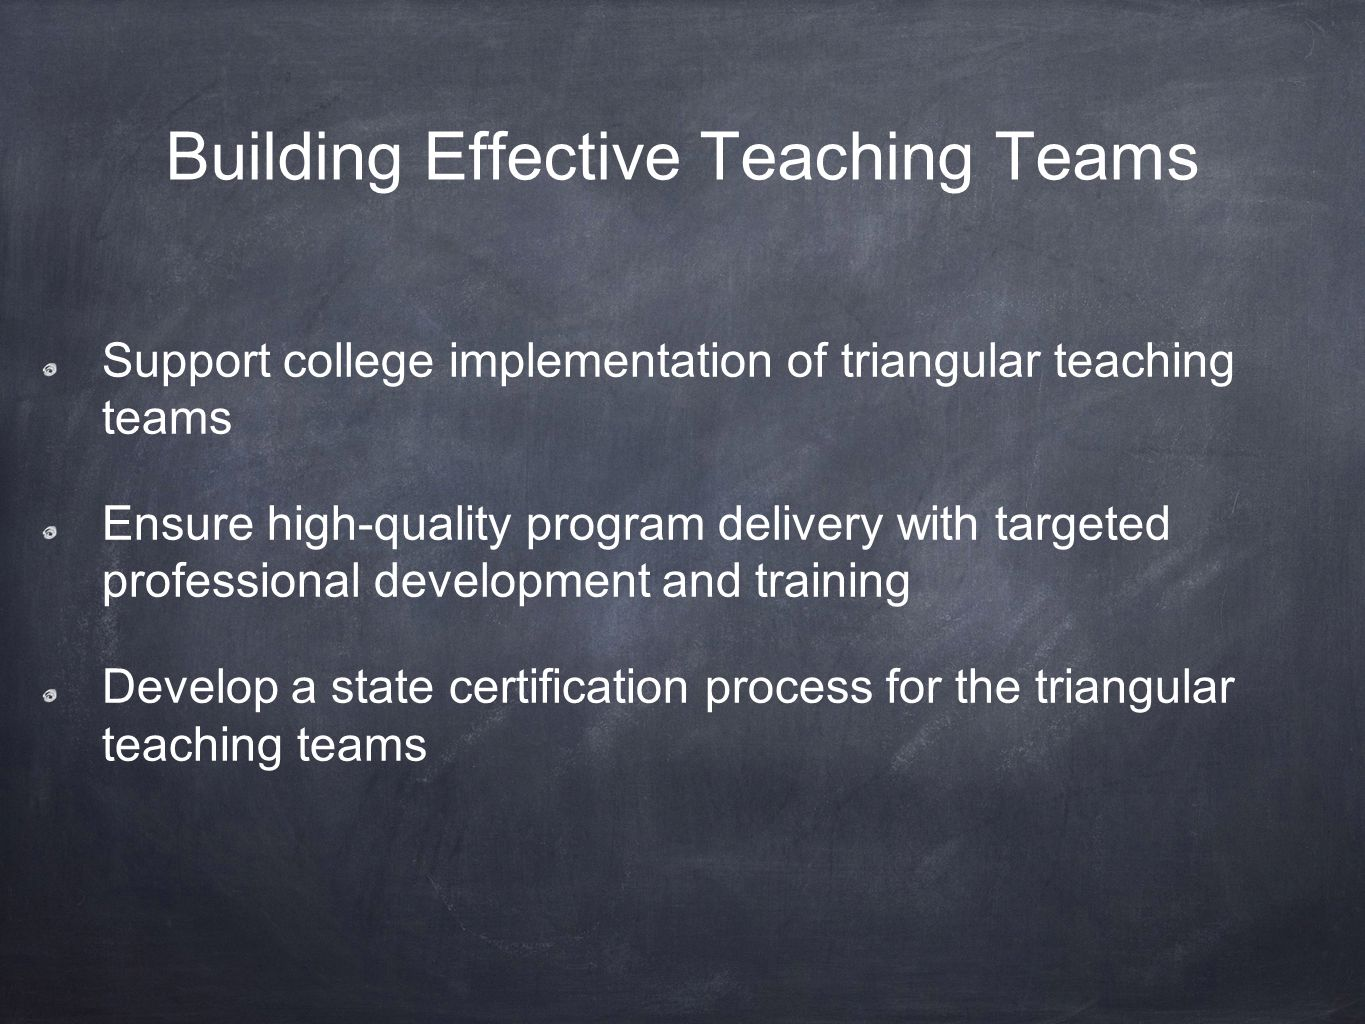 Building Effective Teaching Teams Support college implementation of triangular teaching teams Ensure high-quality program delivery with targeted professional development and training Develop a state certification process for the triangular teaching teams